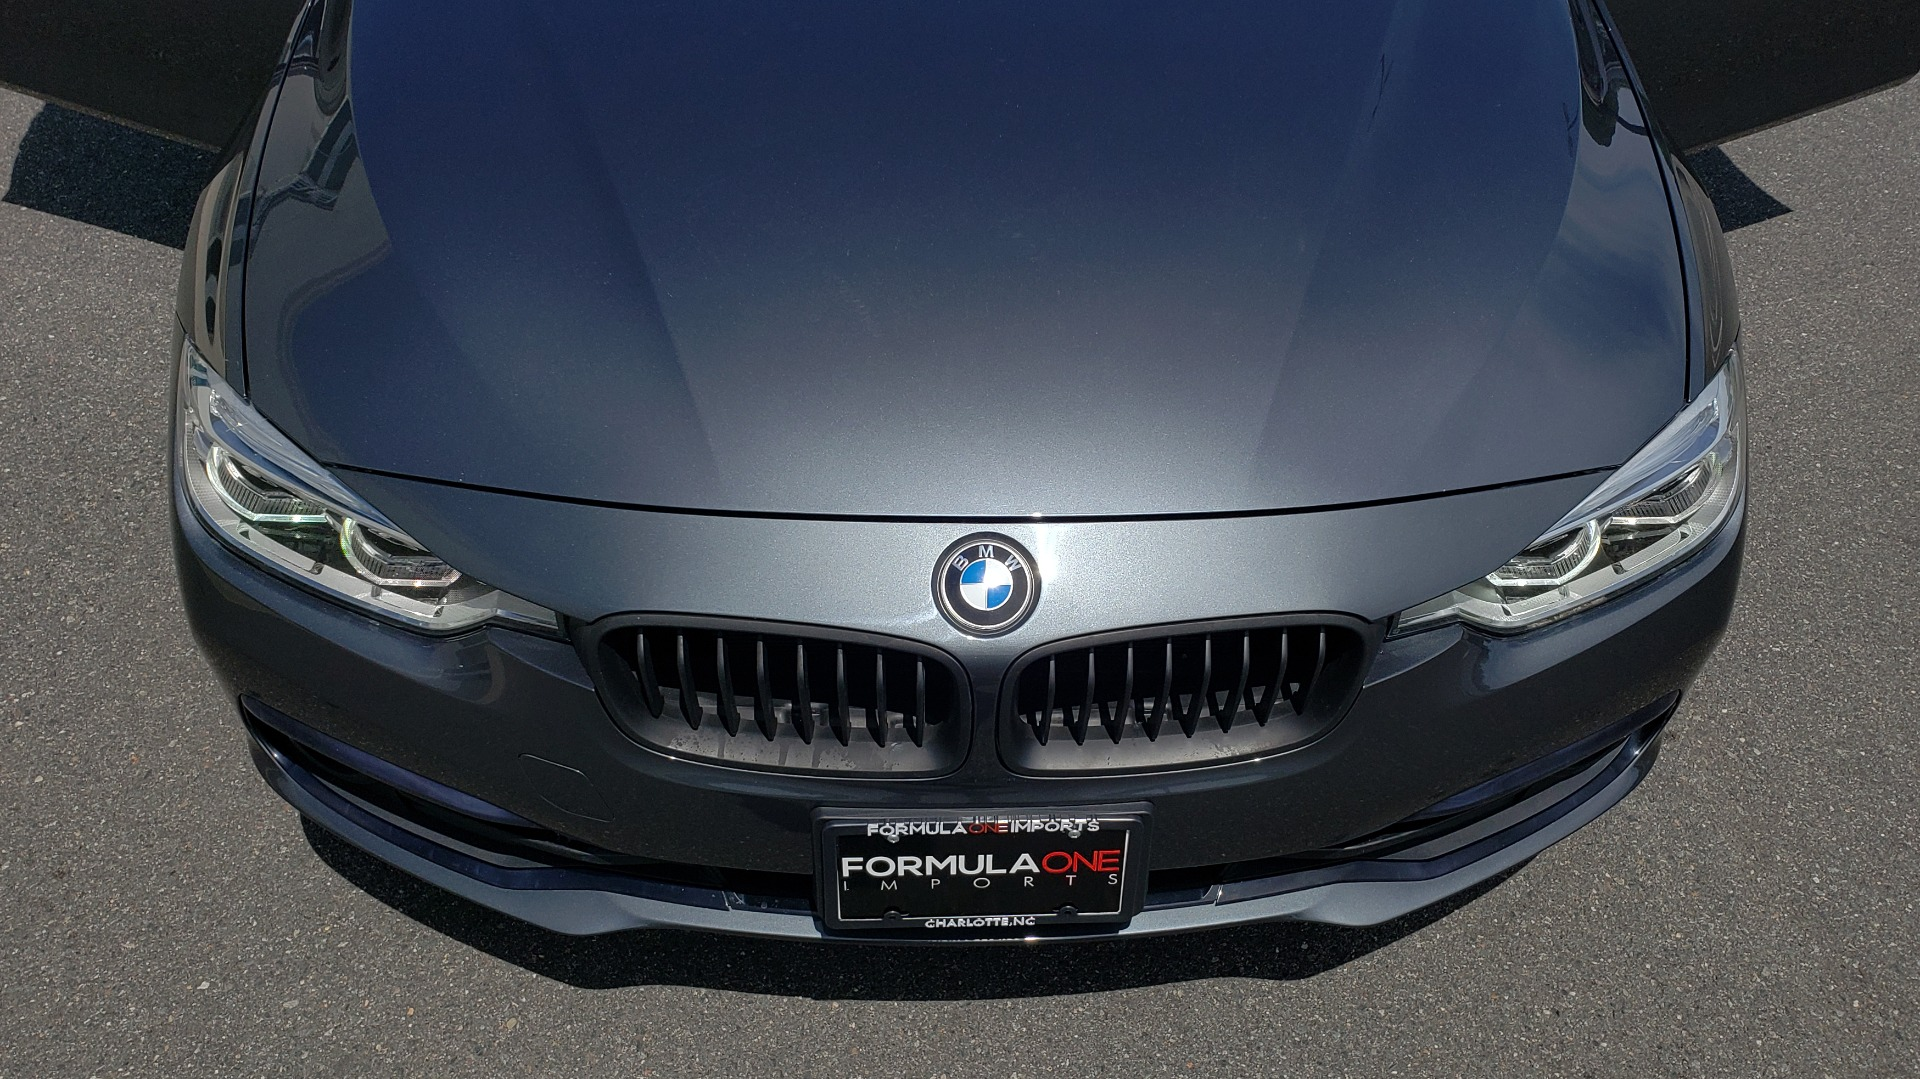 Used 2018 BMW 3 SERIES 330I XDRIVE / CONV PKG / SUNROOF / SPORT STS / HTD STS / REARVIEW for sale $28,495 at Formula Imports in Charlotte NC 28227 22